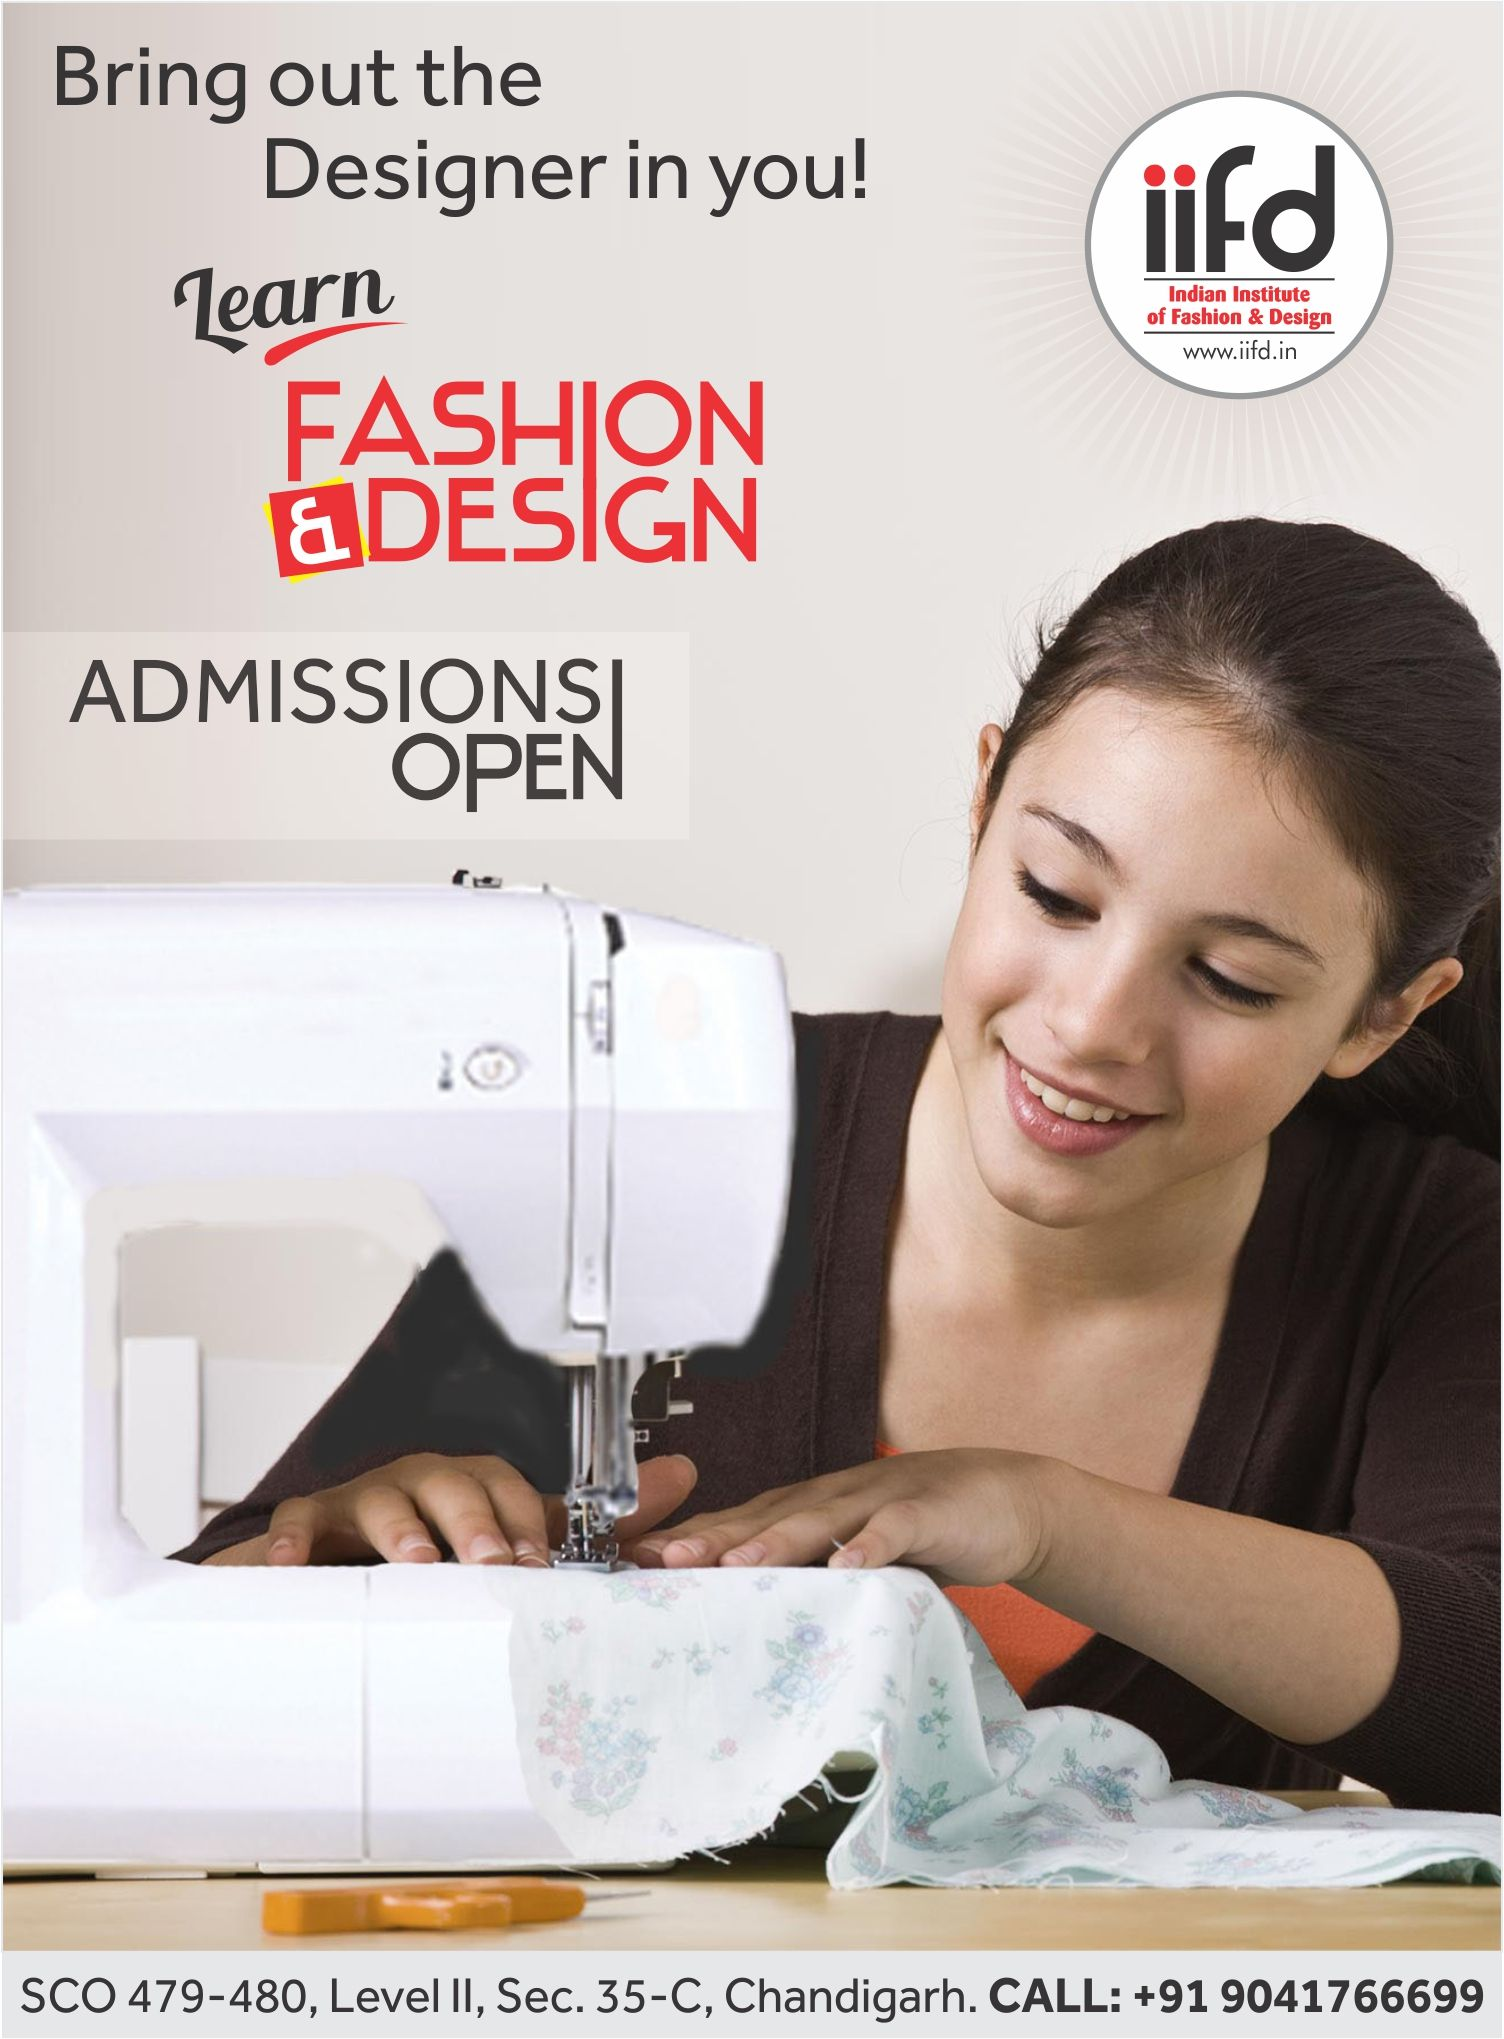 learn fashion designing at home. Learn Fashion Design  Admission open in IIFD Bring out the designer you